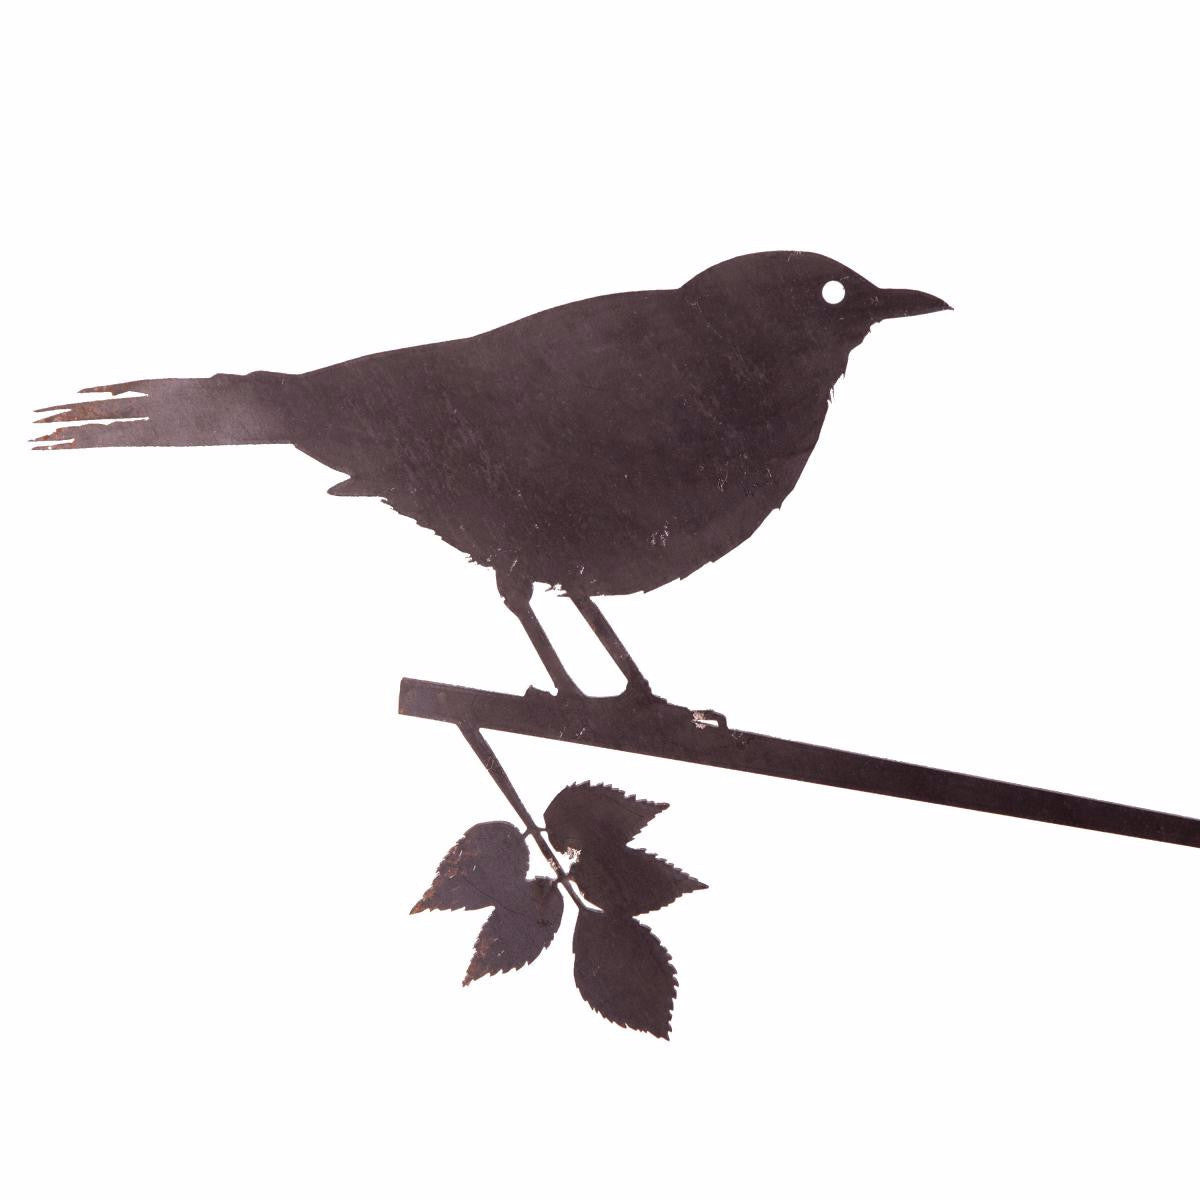 Metalbird - Currawong - Metalbird - Throw Some Seeds - Australian gardening gifts and eco products online!